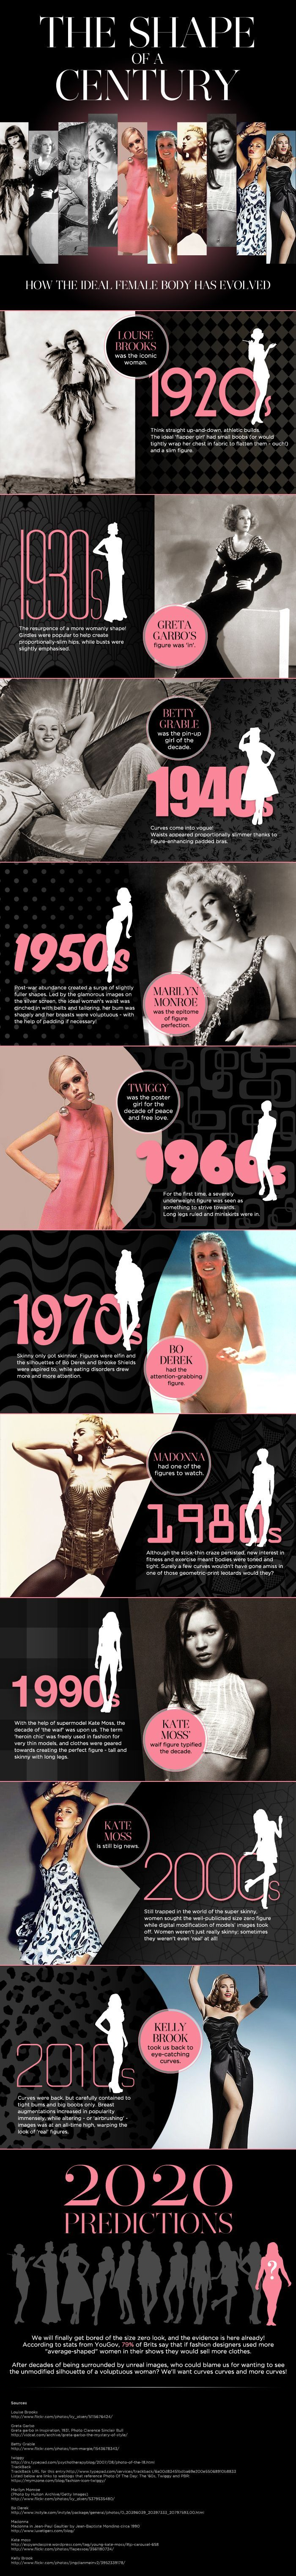 "How Have Women's Bodies Evolved? - The online fashion retailer, Marisota, created this infographic that takes a look at the evolution of culture's definition of the ""perfect"" women. The infographic timeline provides examples of the ideal female body shape from 1920′s all the way to their predictions for 2020."